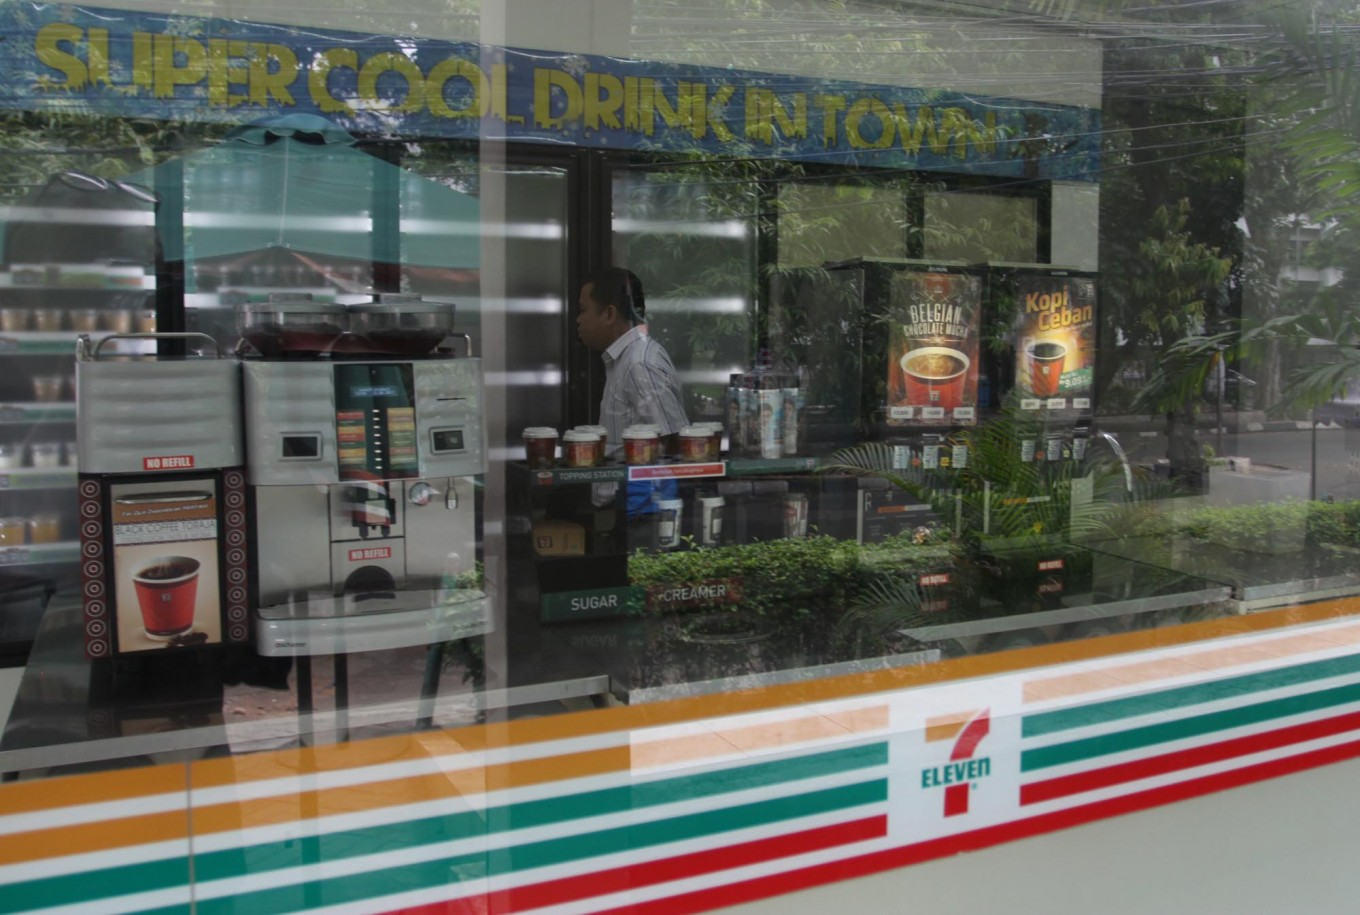 7-Eleven loses steam due to alcohol ban, tight margin: Business group